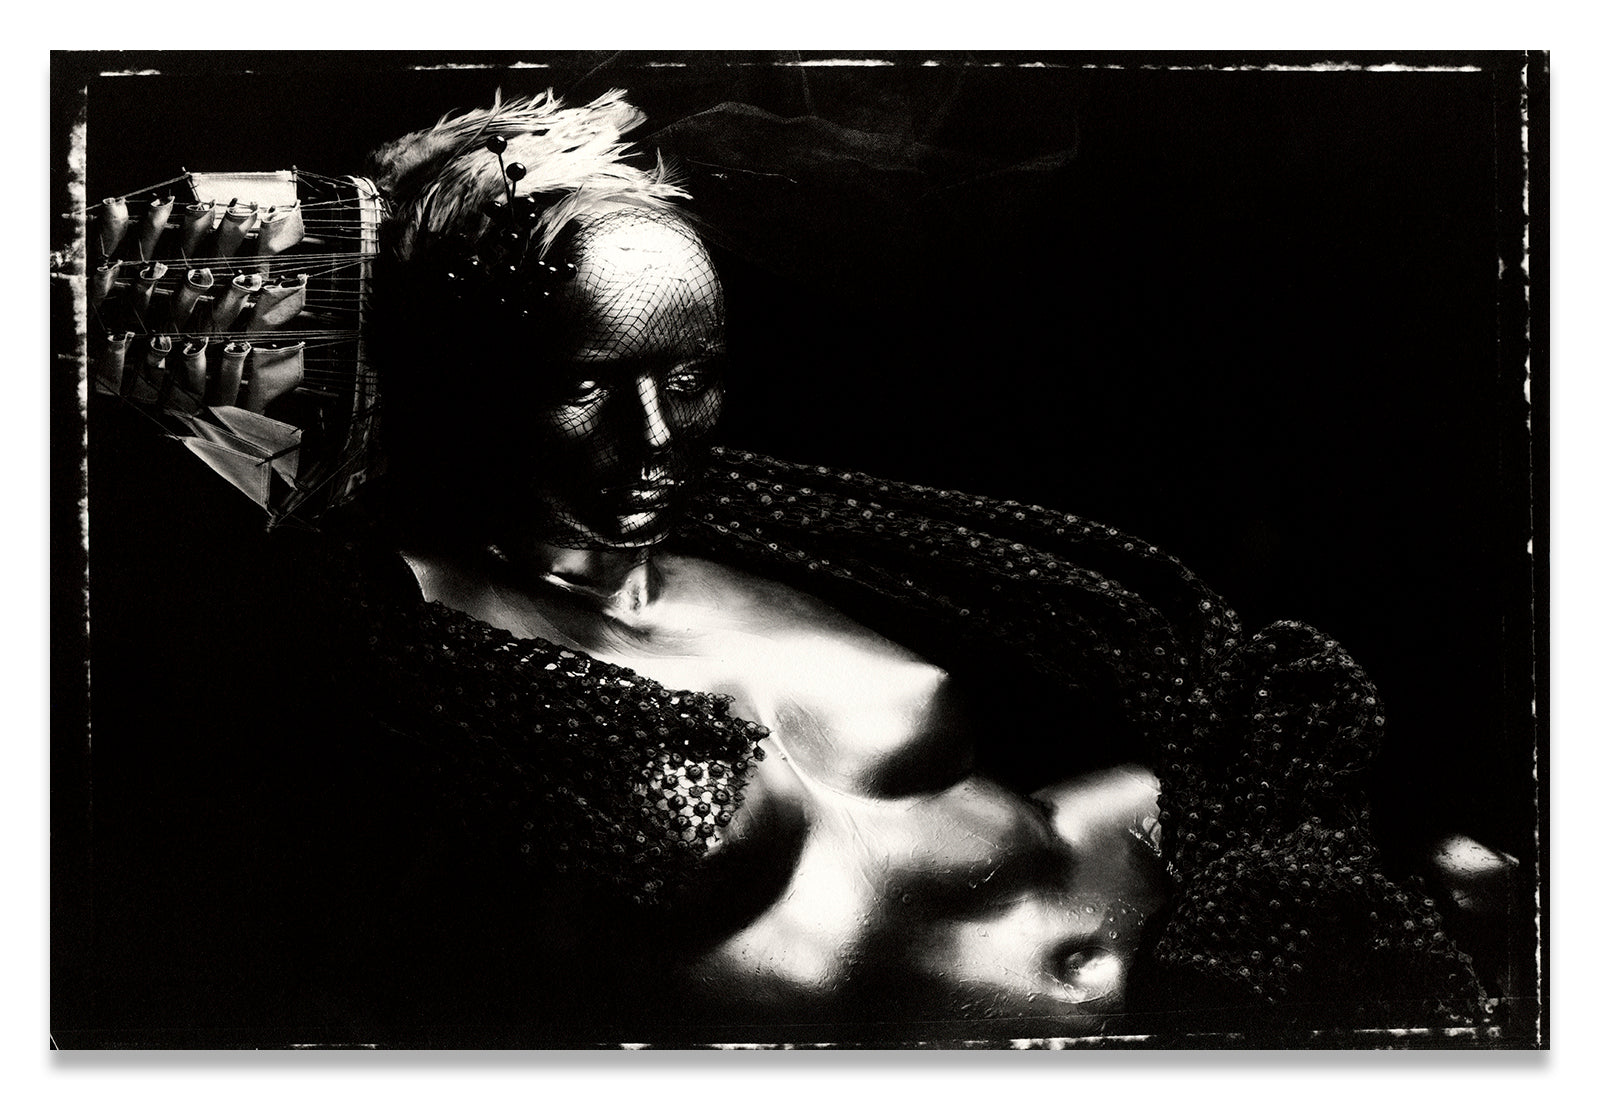 Horizontal Black and White Portrait, on Polaroid 55, of a nude, metallic mannequin torso with a Ship Hat and Feather Headpiece along the side of the Head-Metal Print-Aluminum Print